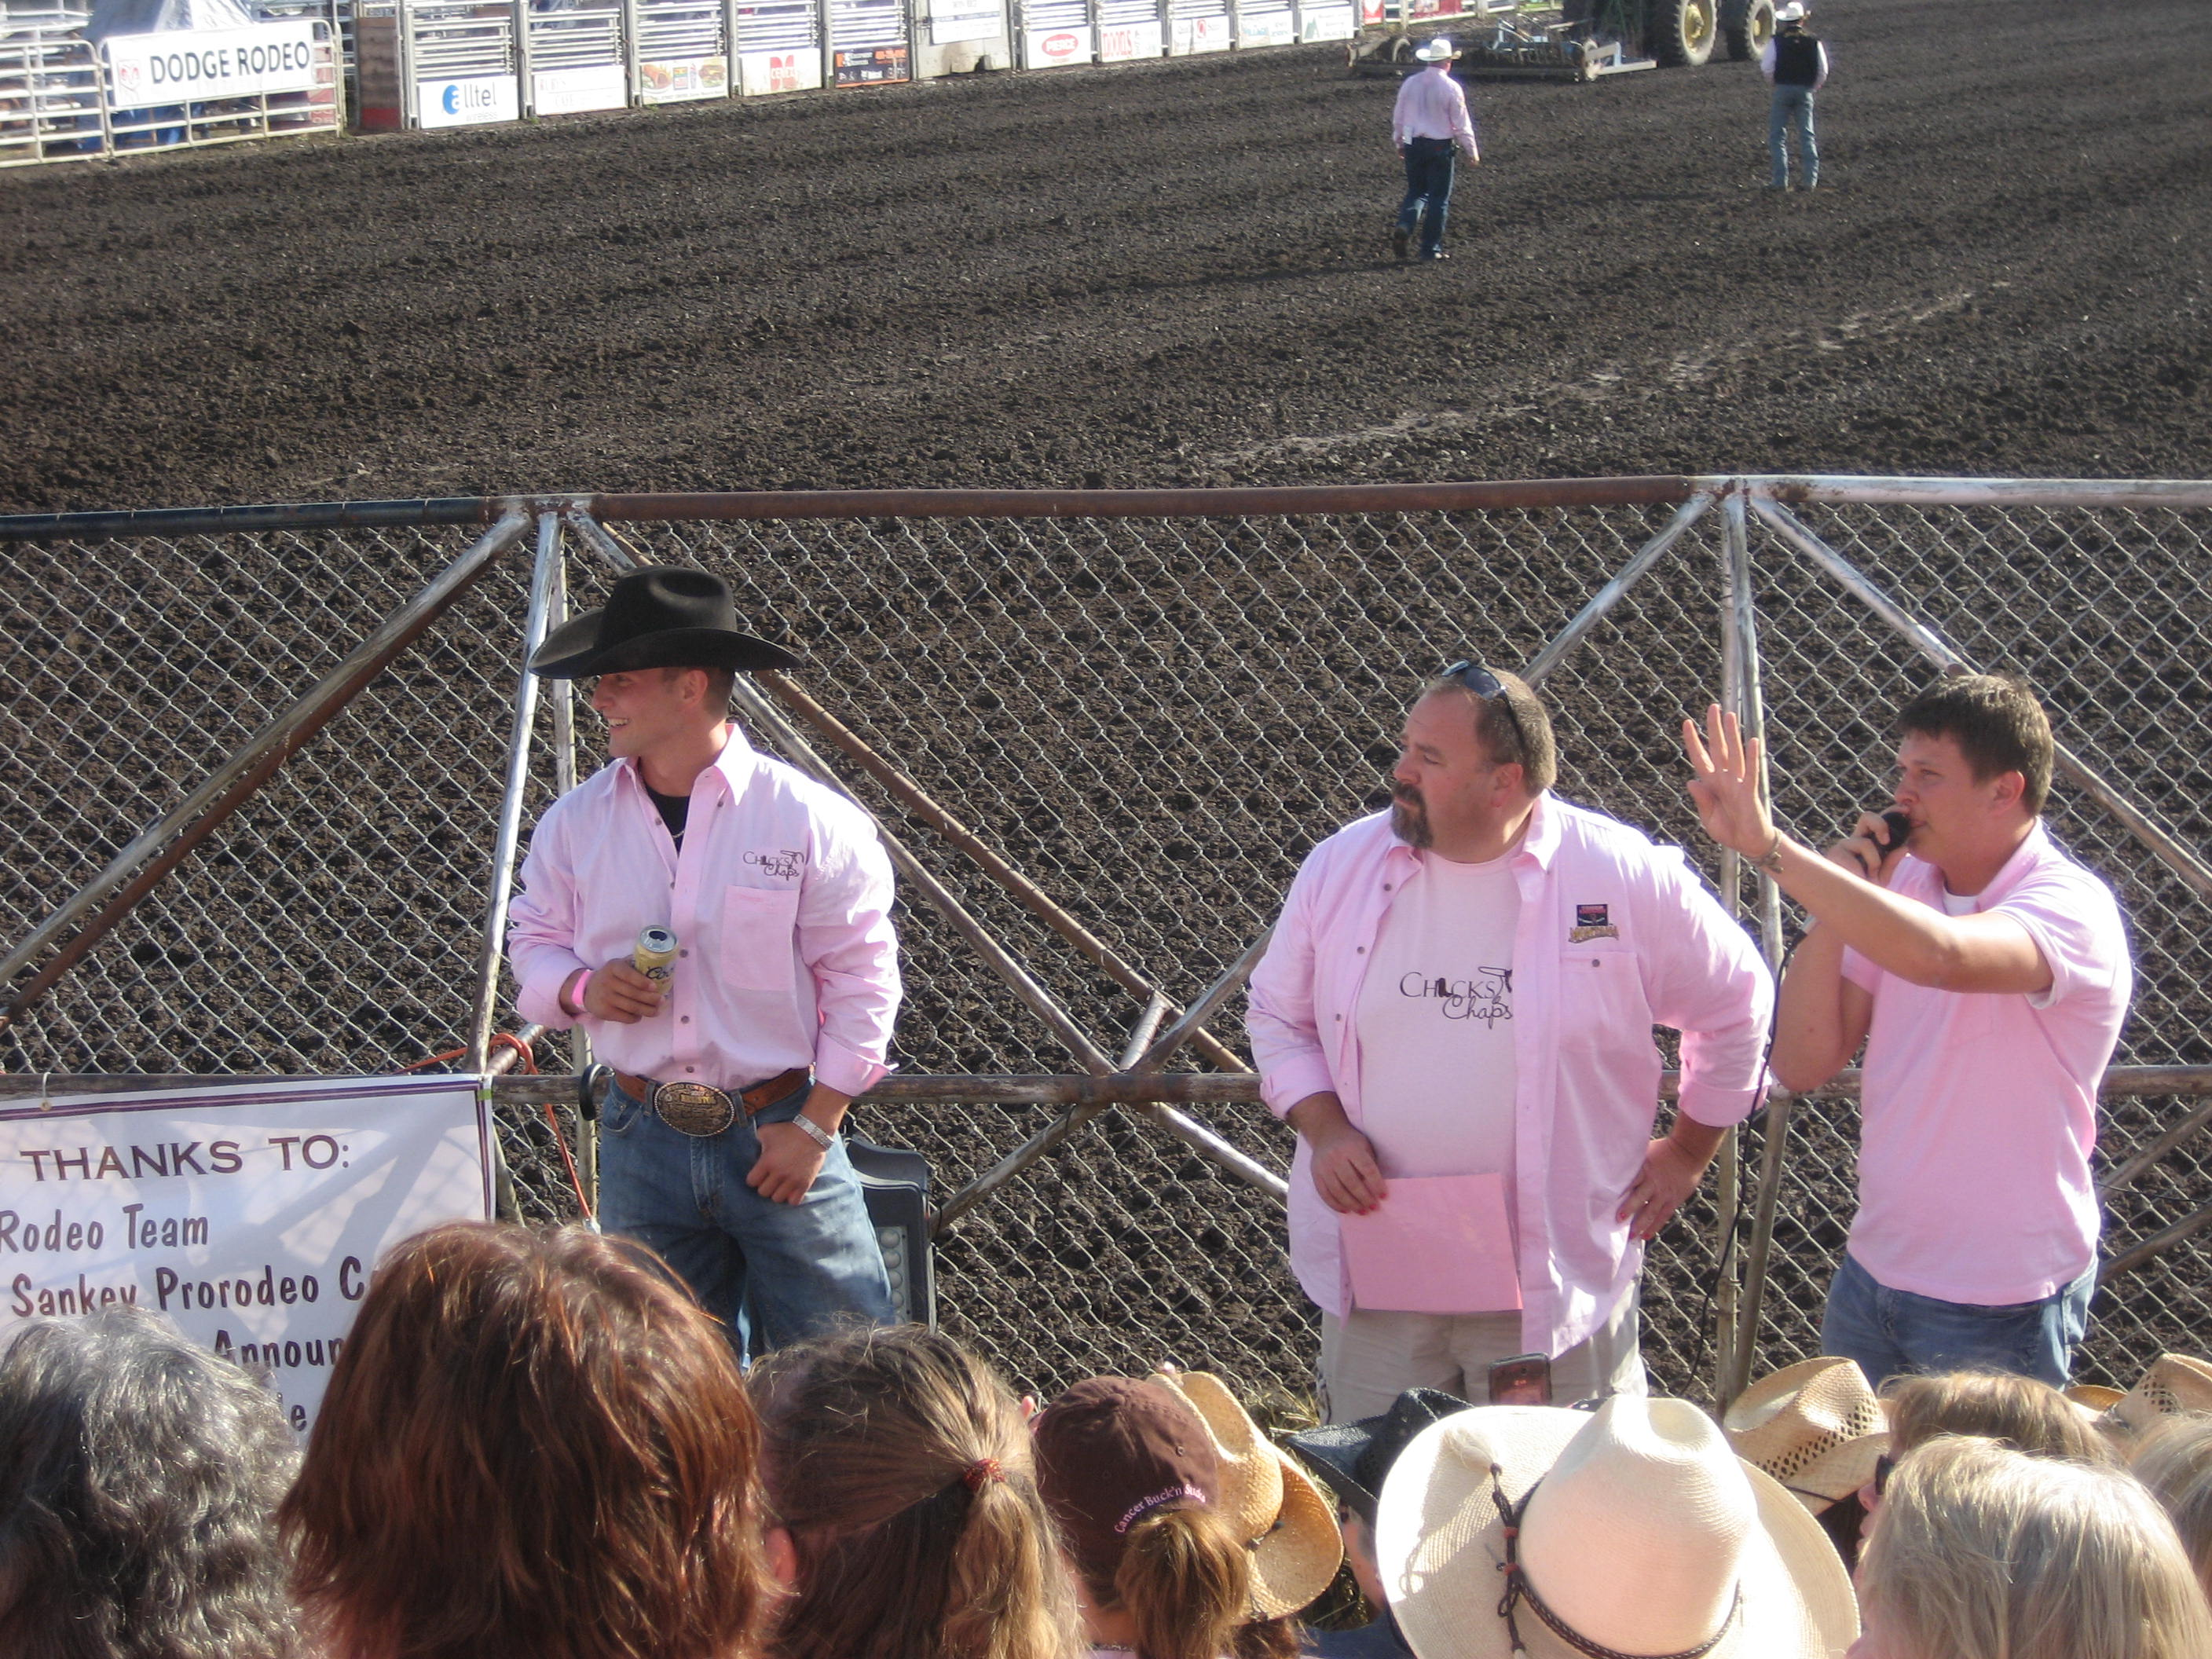 Cowboy for sale! The other guy is our Mayor and on the right is the auctioneer